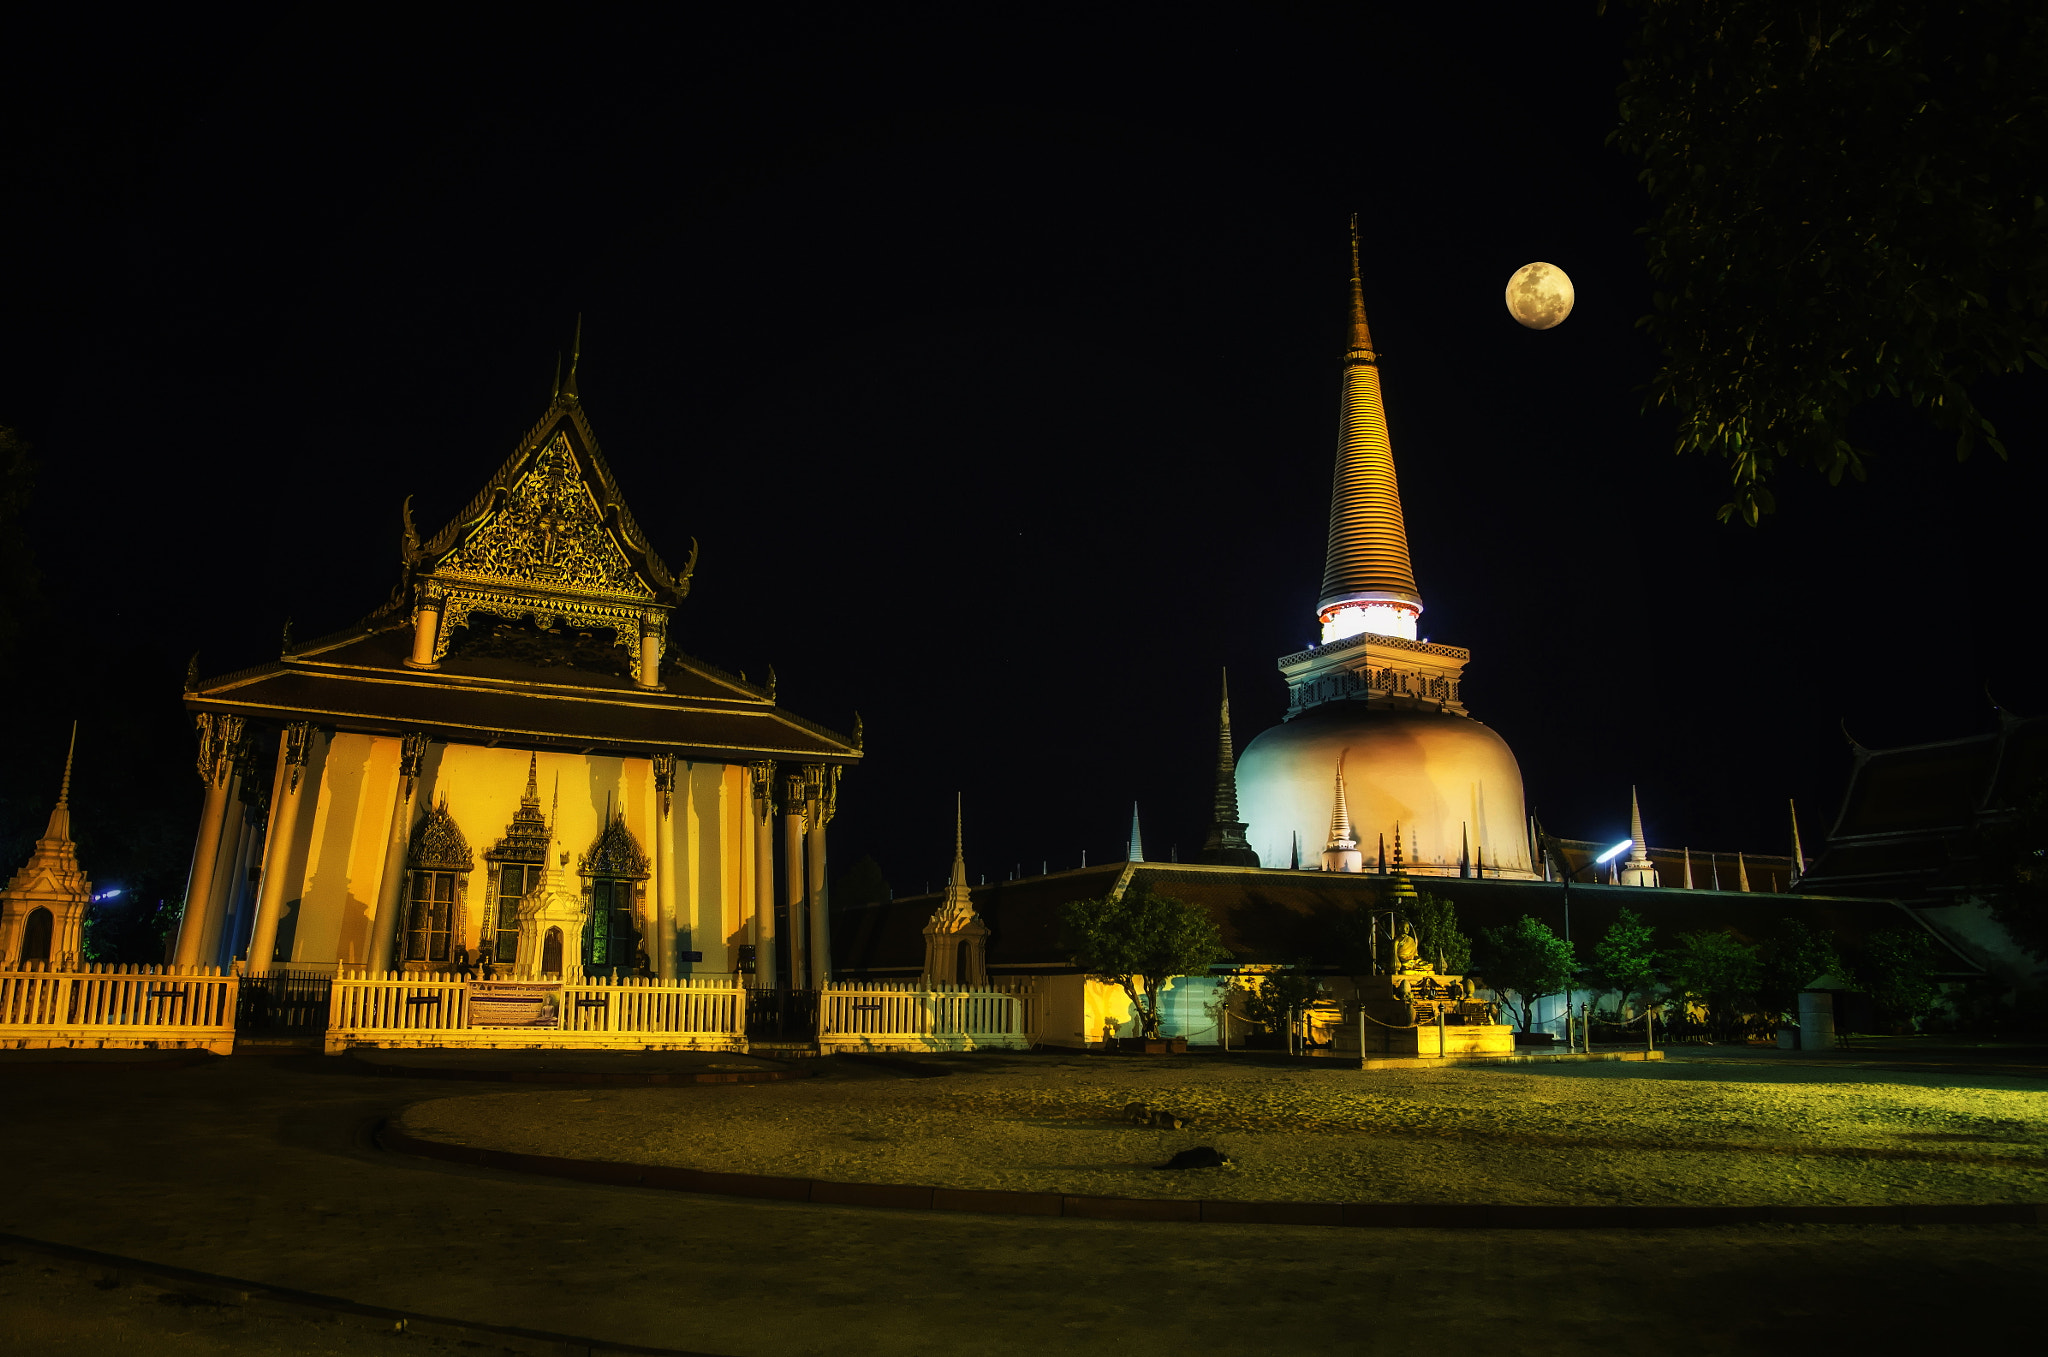 Photograph Wat Pramahatat woramahaviharn by Nuang Sangkhsri on 500px